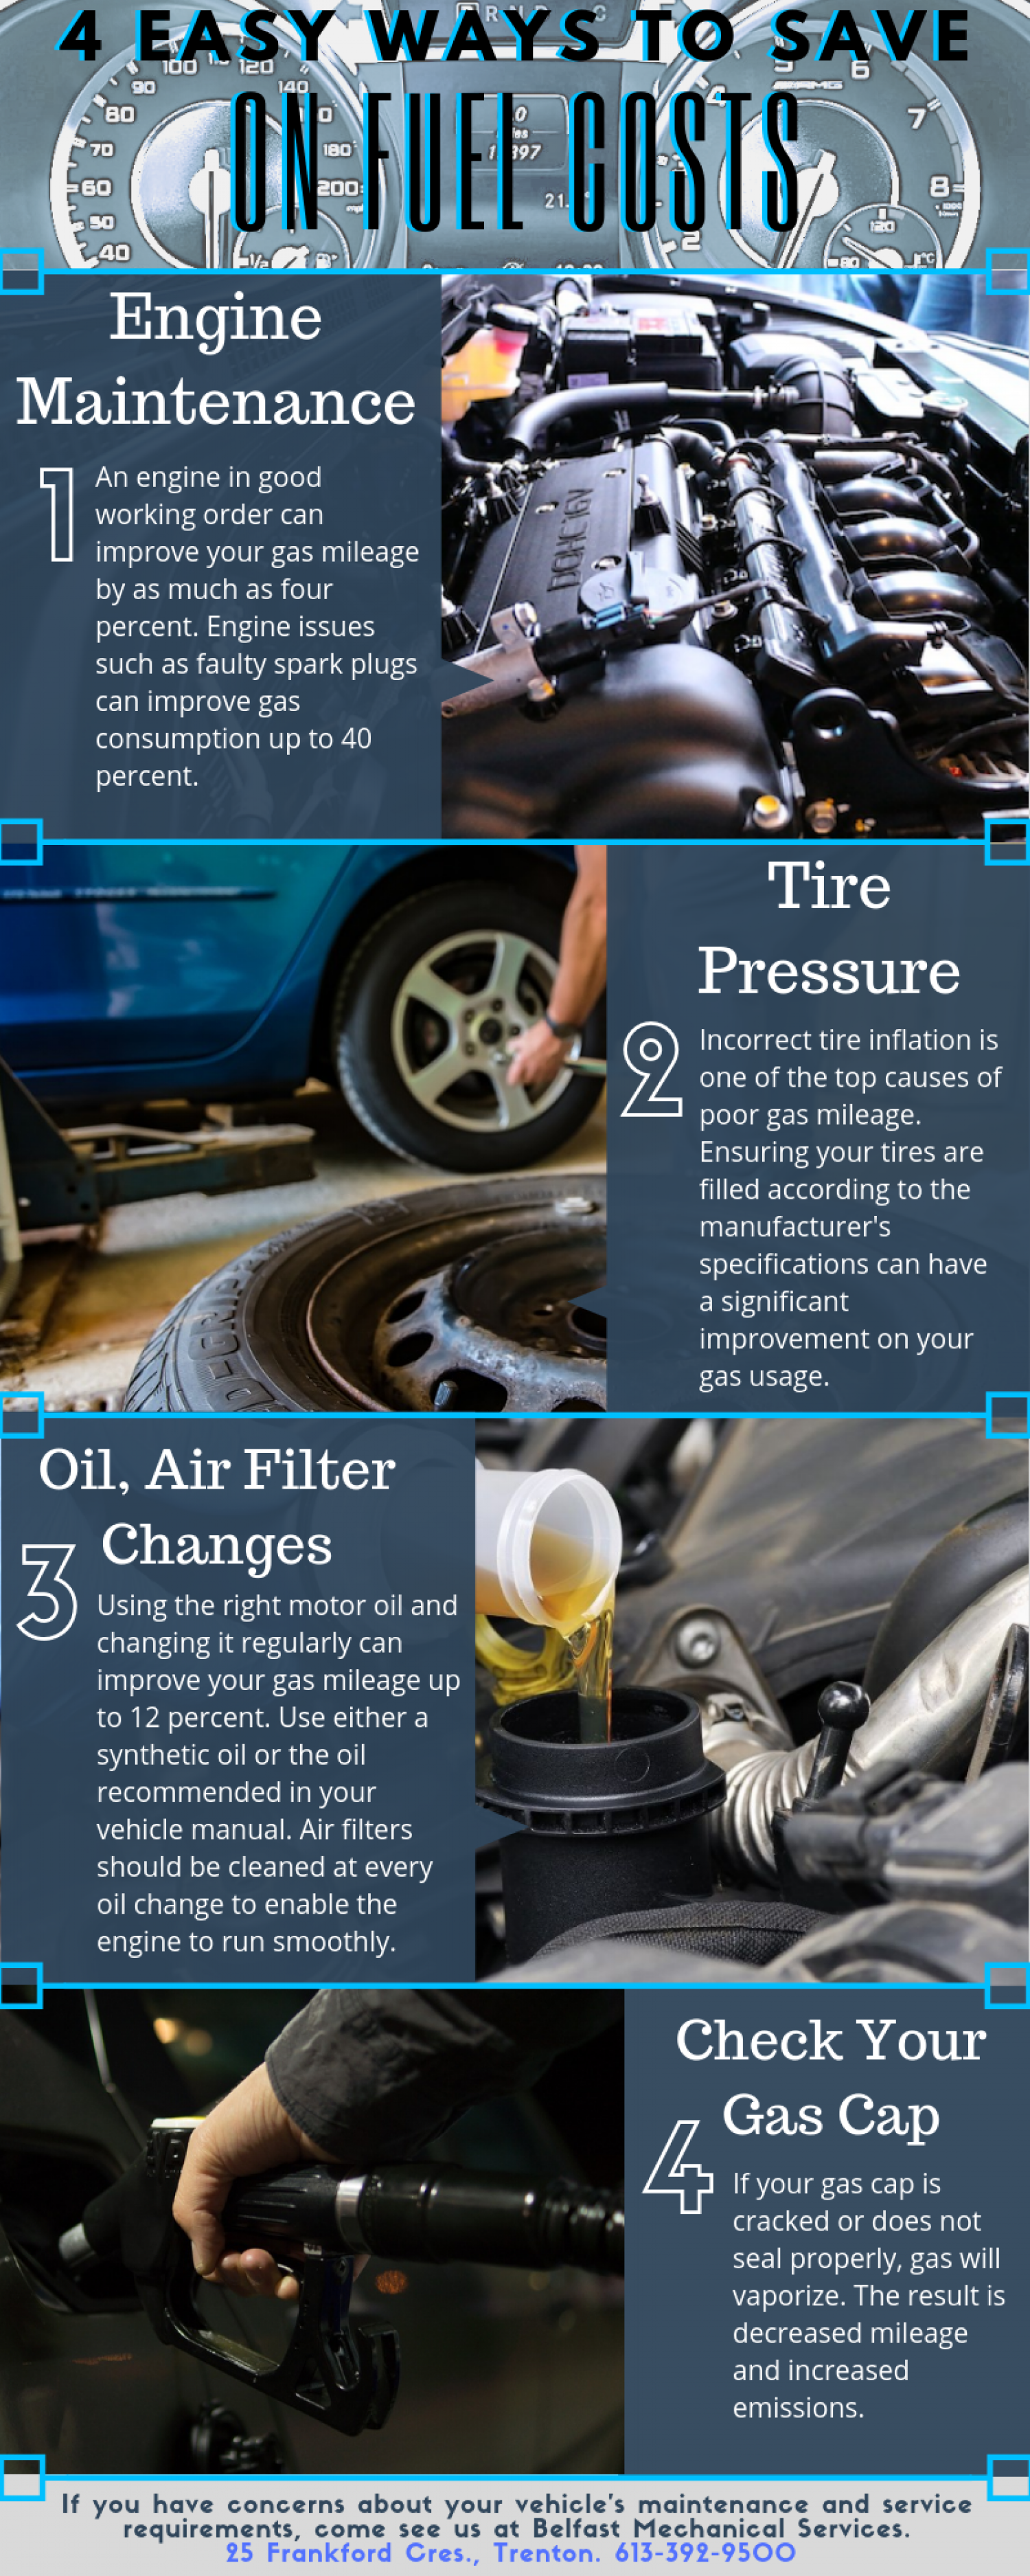 4 Easy Ways to Save on Fuel Costs Infographic